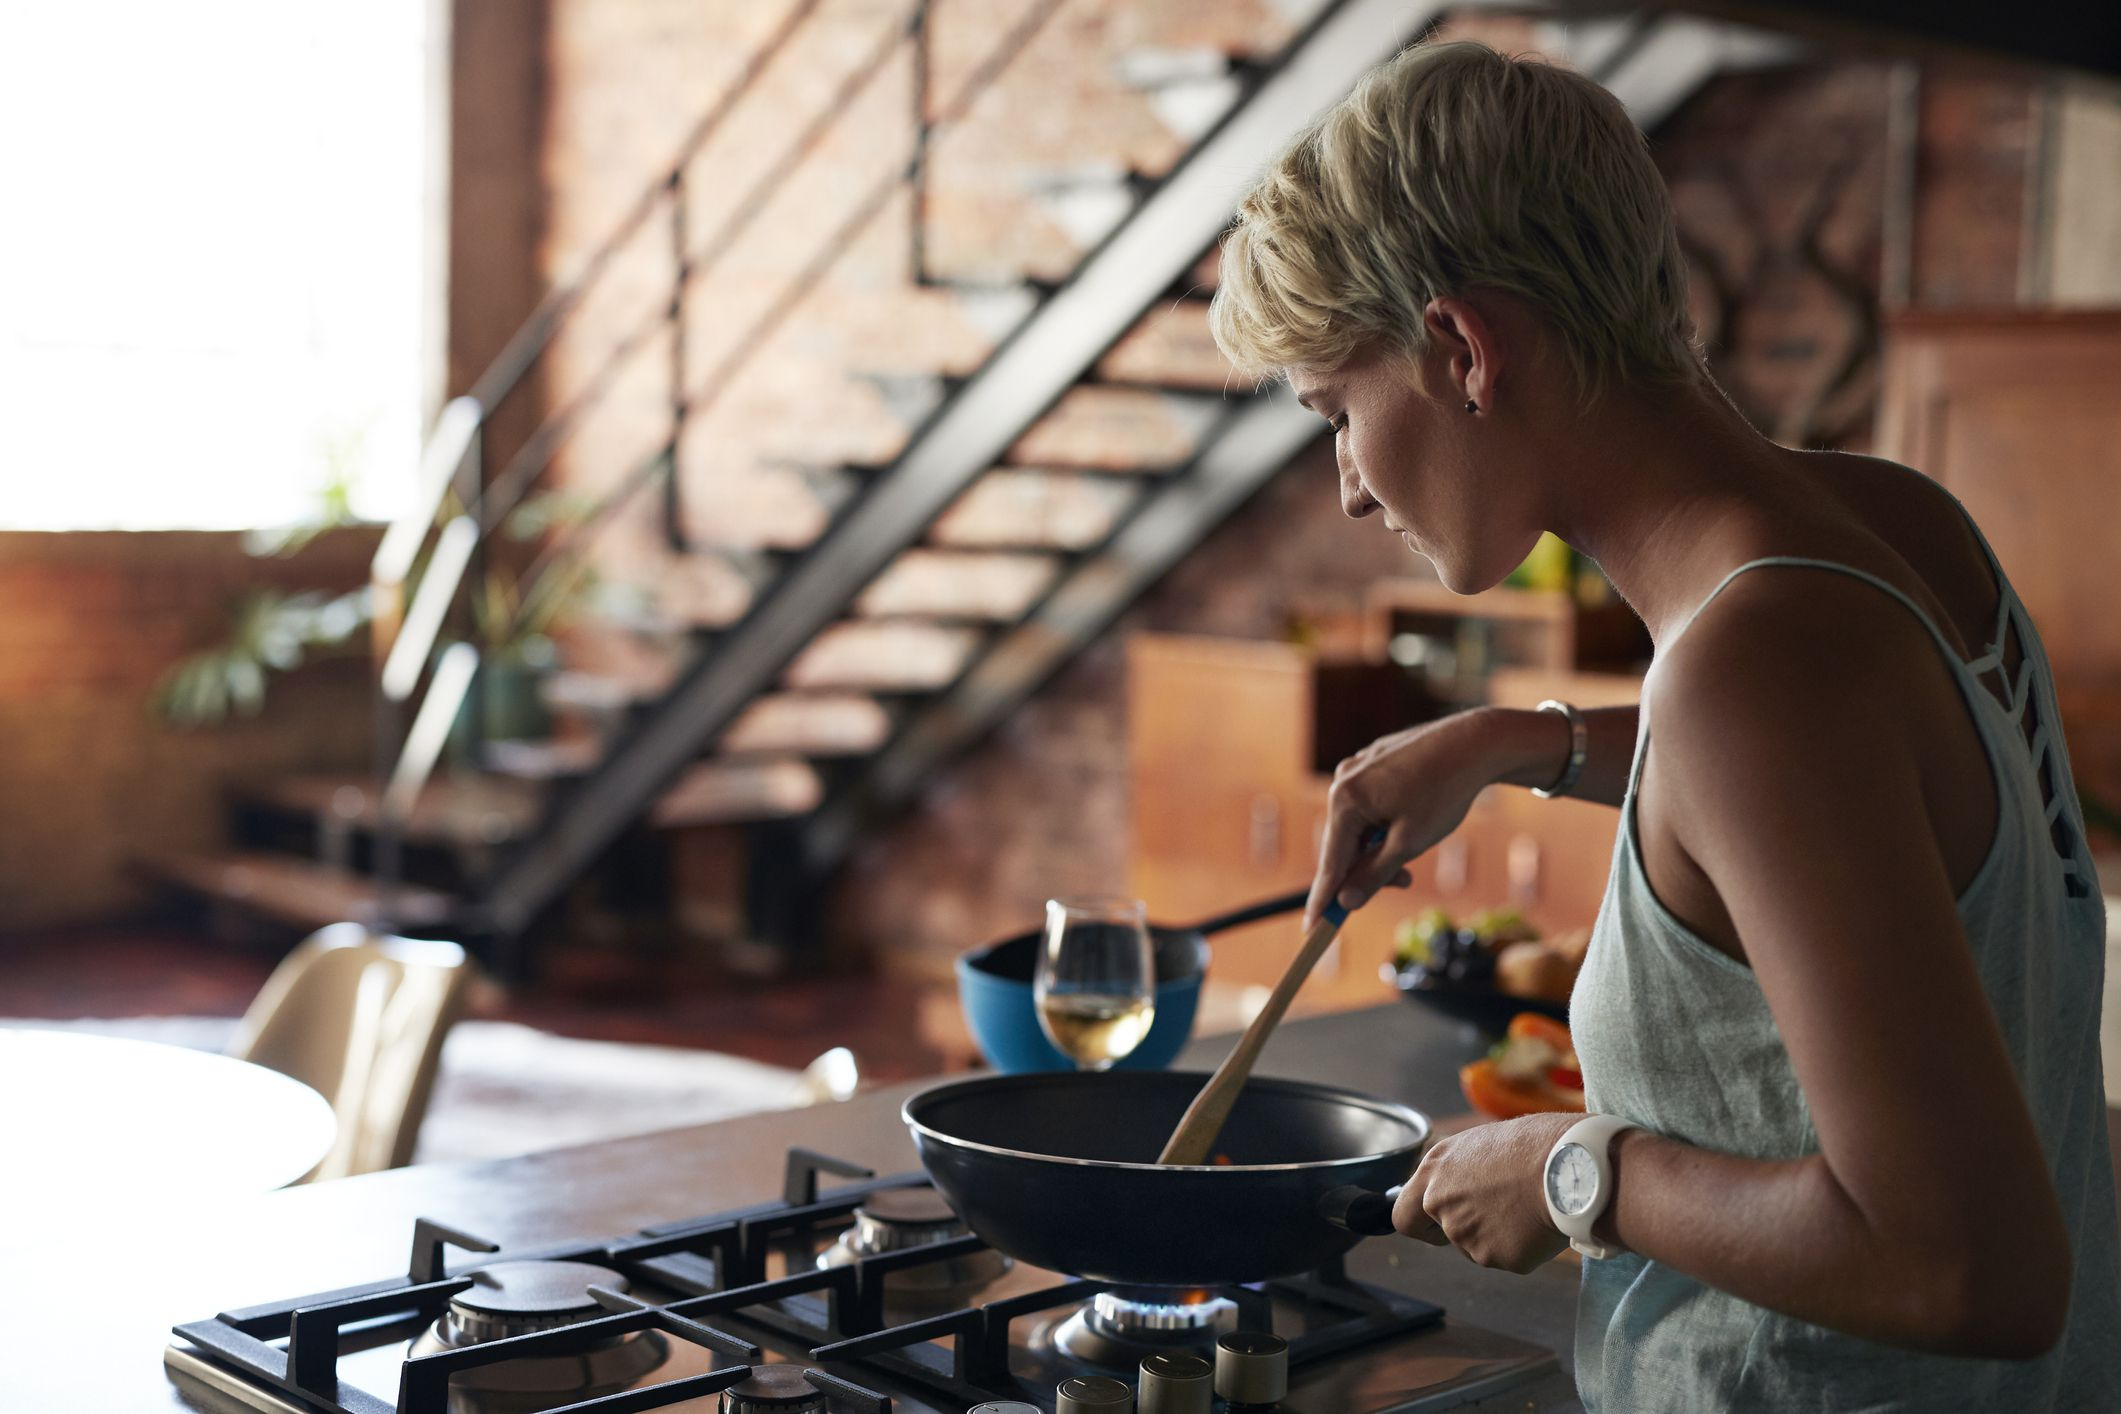 The 5 Best Induction Cooktops To Buy In 2019 Cooker Circuit Boardsolar Cookerinduction